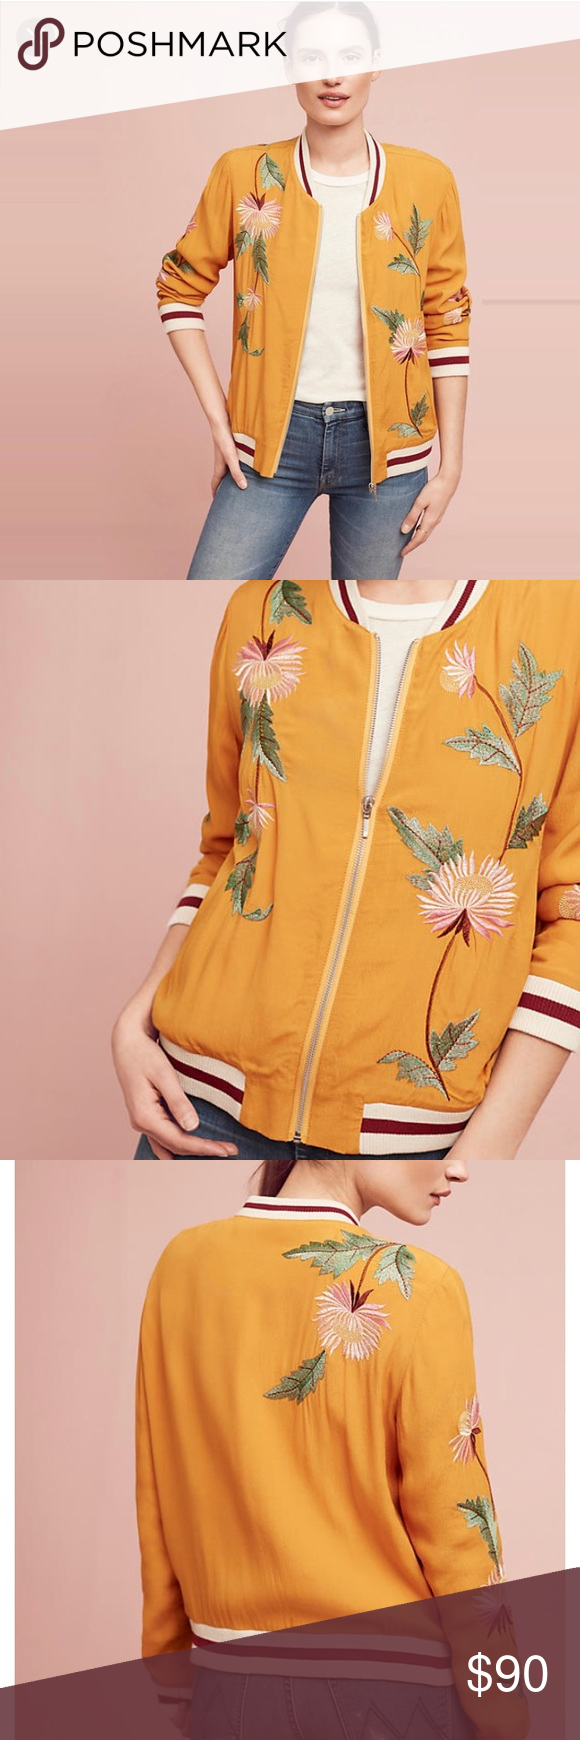 b00e37f5b Anthropologie Embroidered Solstice Bomber Jacket Anthropologie ...